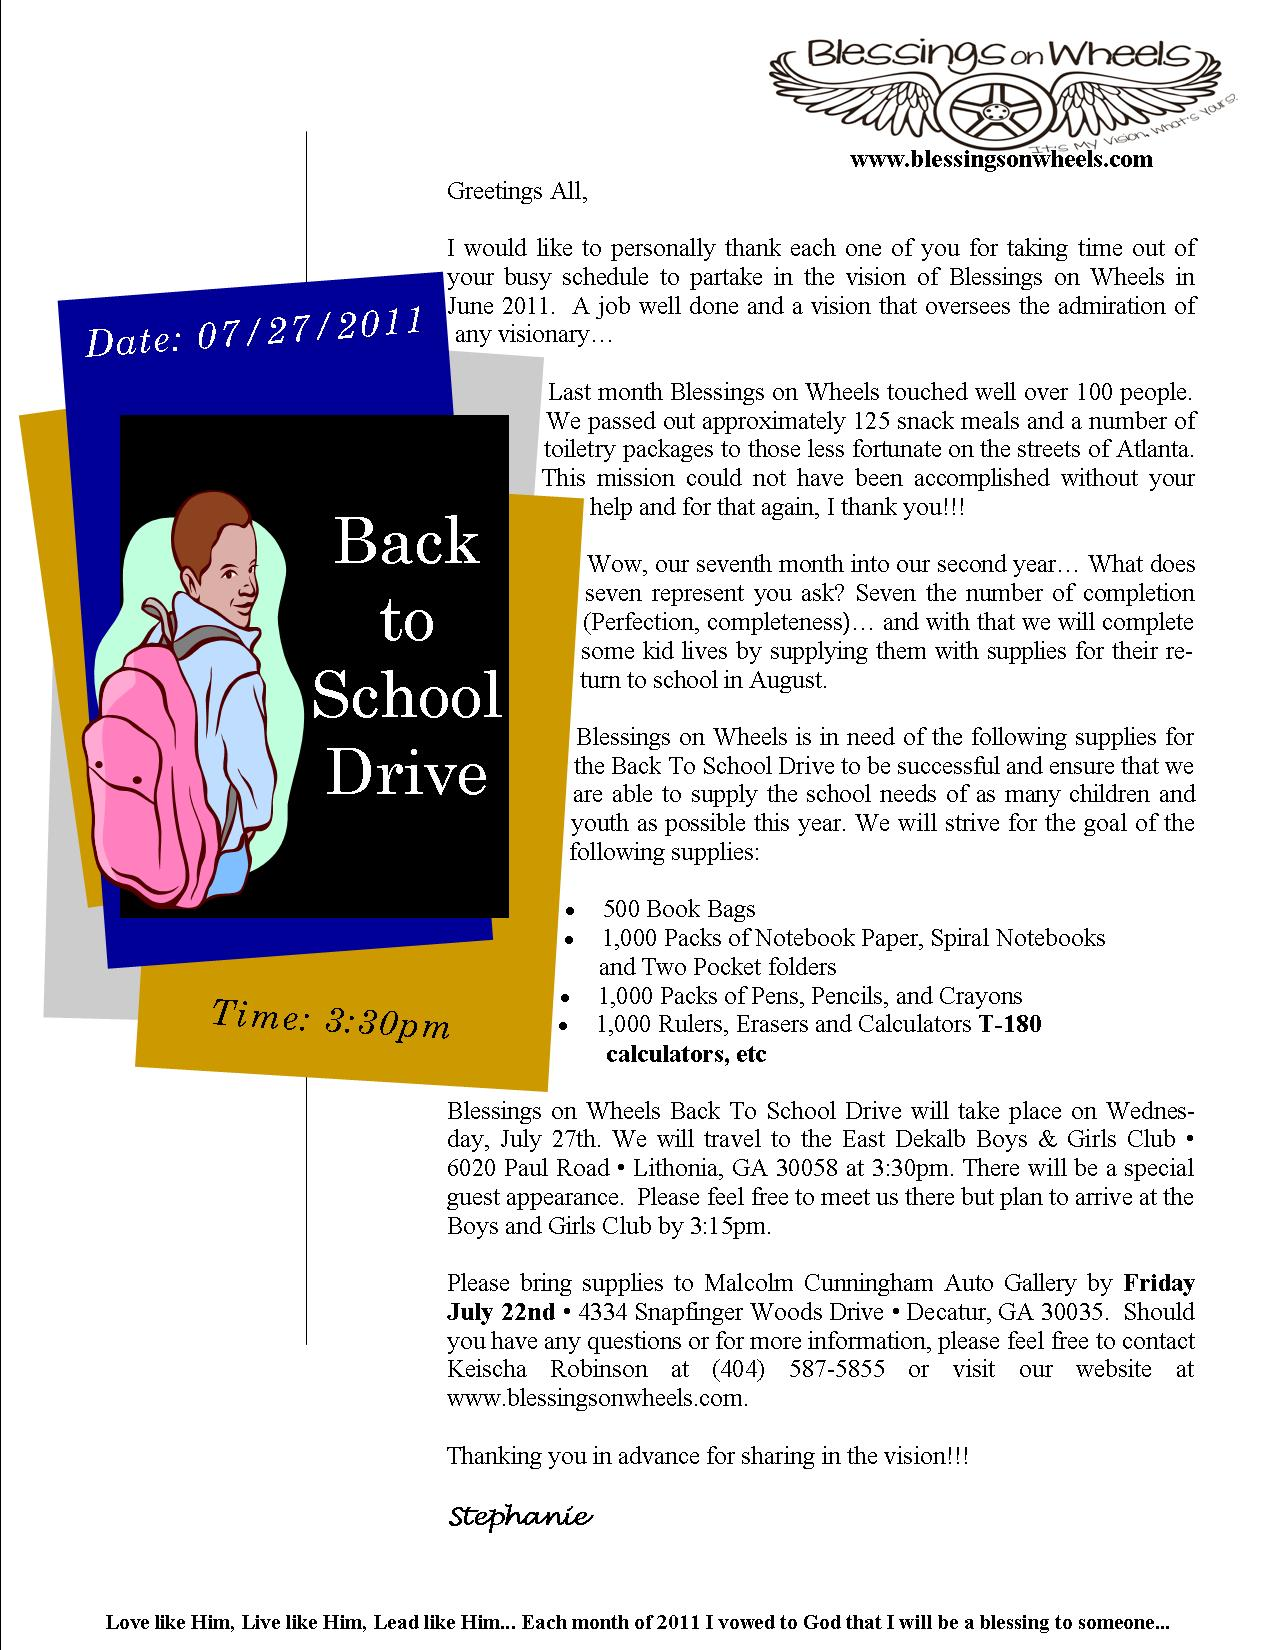 Blessings On Wheels Back To School Drive July 27th 2011